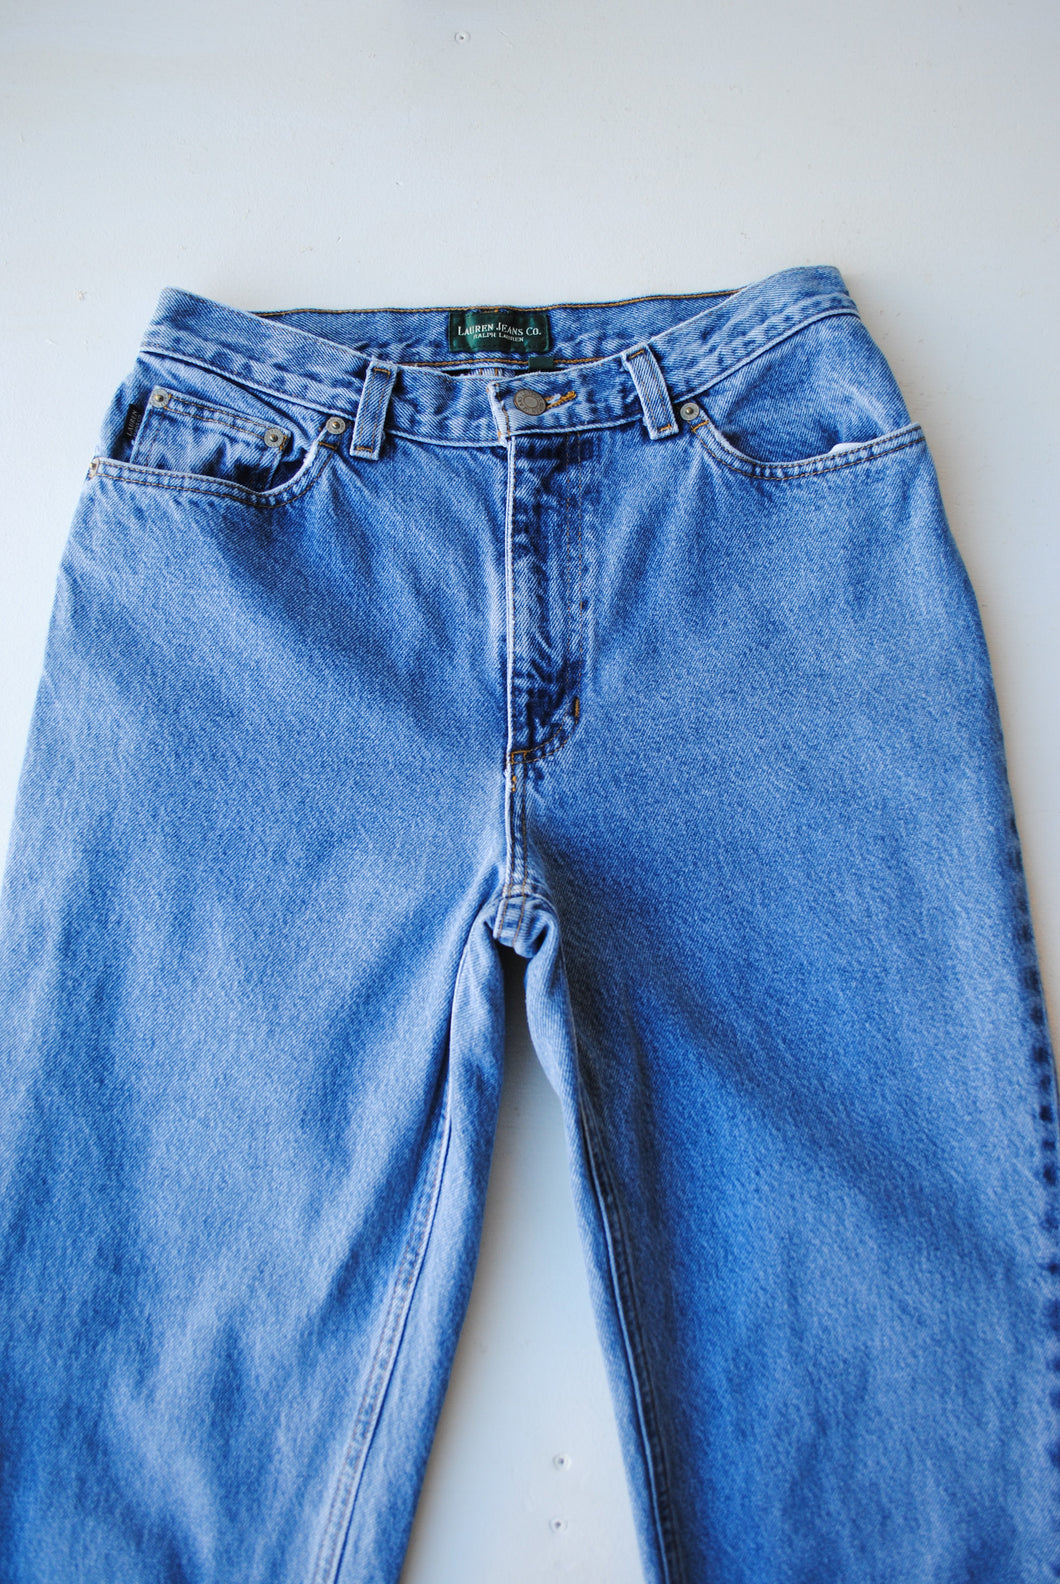 Light Wash Ralph Lauren Jeans, 28-29